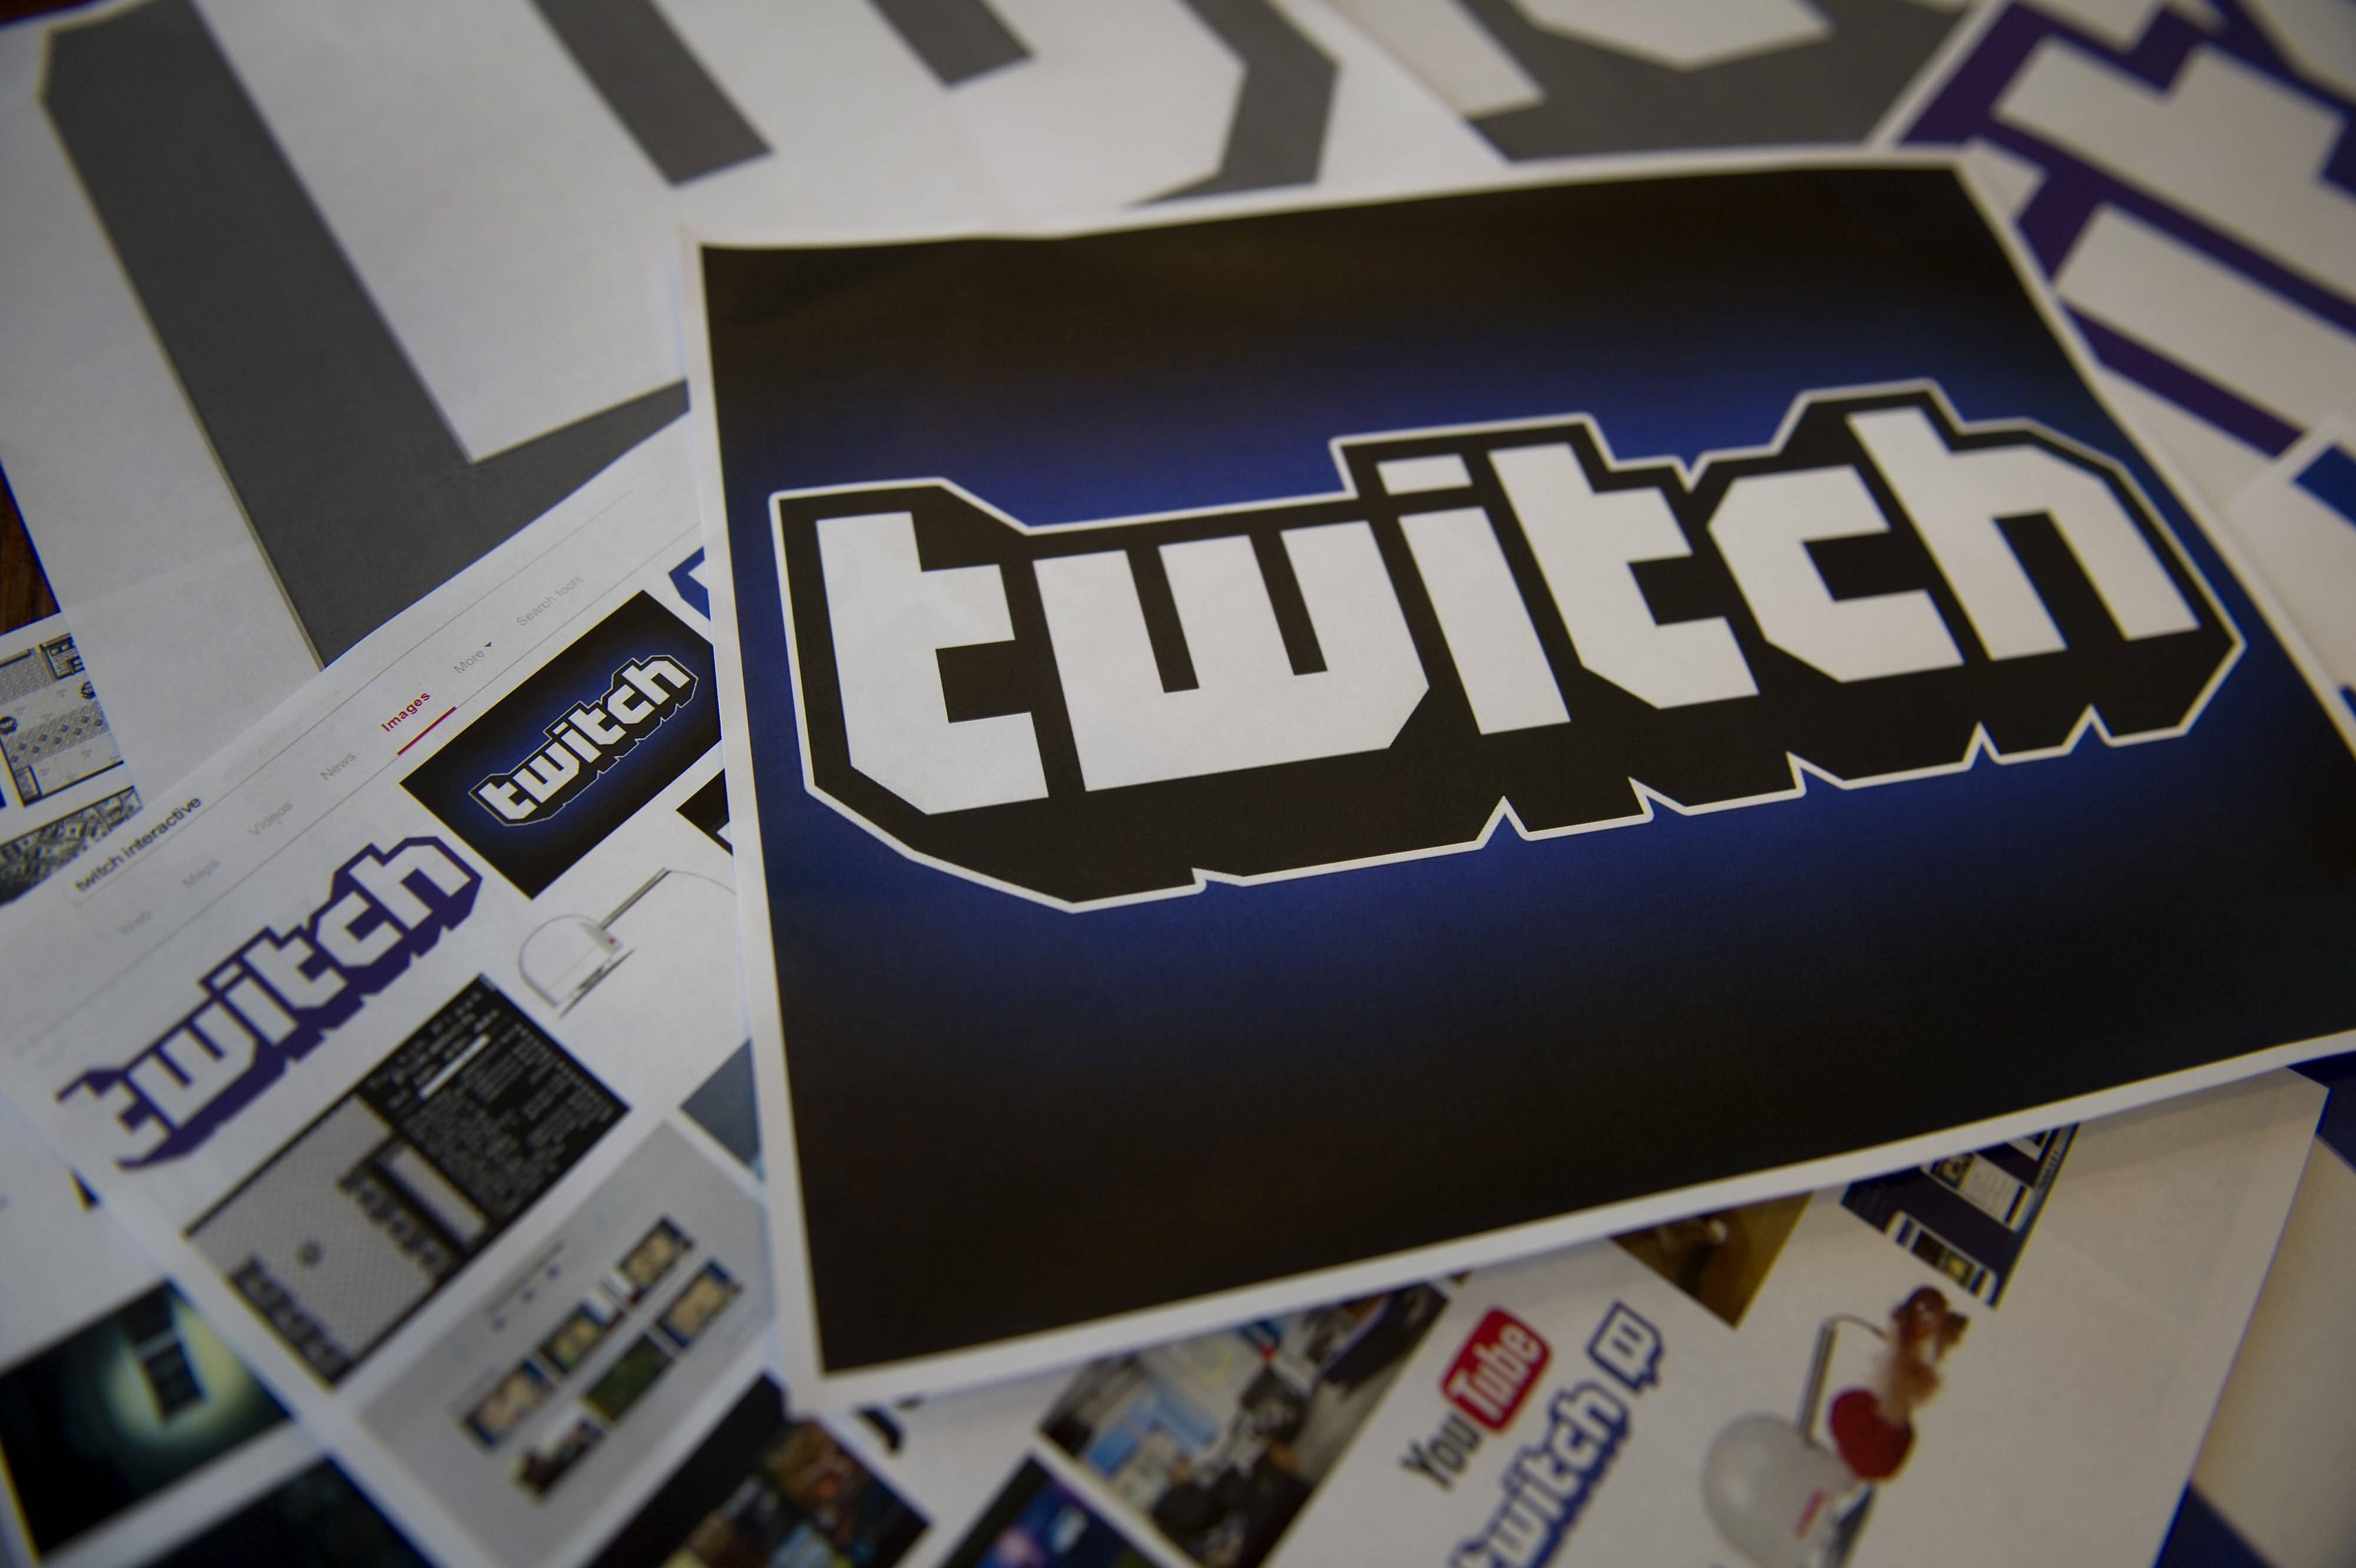 The Twitch Interactive Inc. logo is arranged for a photograph in San Francisco, California, U.S., on Monday, Aug. 25, 2014. Amazon.com Inc. is buying video service Twitch Interactive Inc. for more than $1 billion in its biggest acquisition ever, adding an online gathering place for video gamers, people with knowledge of the plans said. Photographer: David Paul Morris/Bloomberg